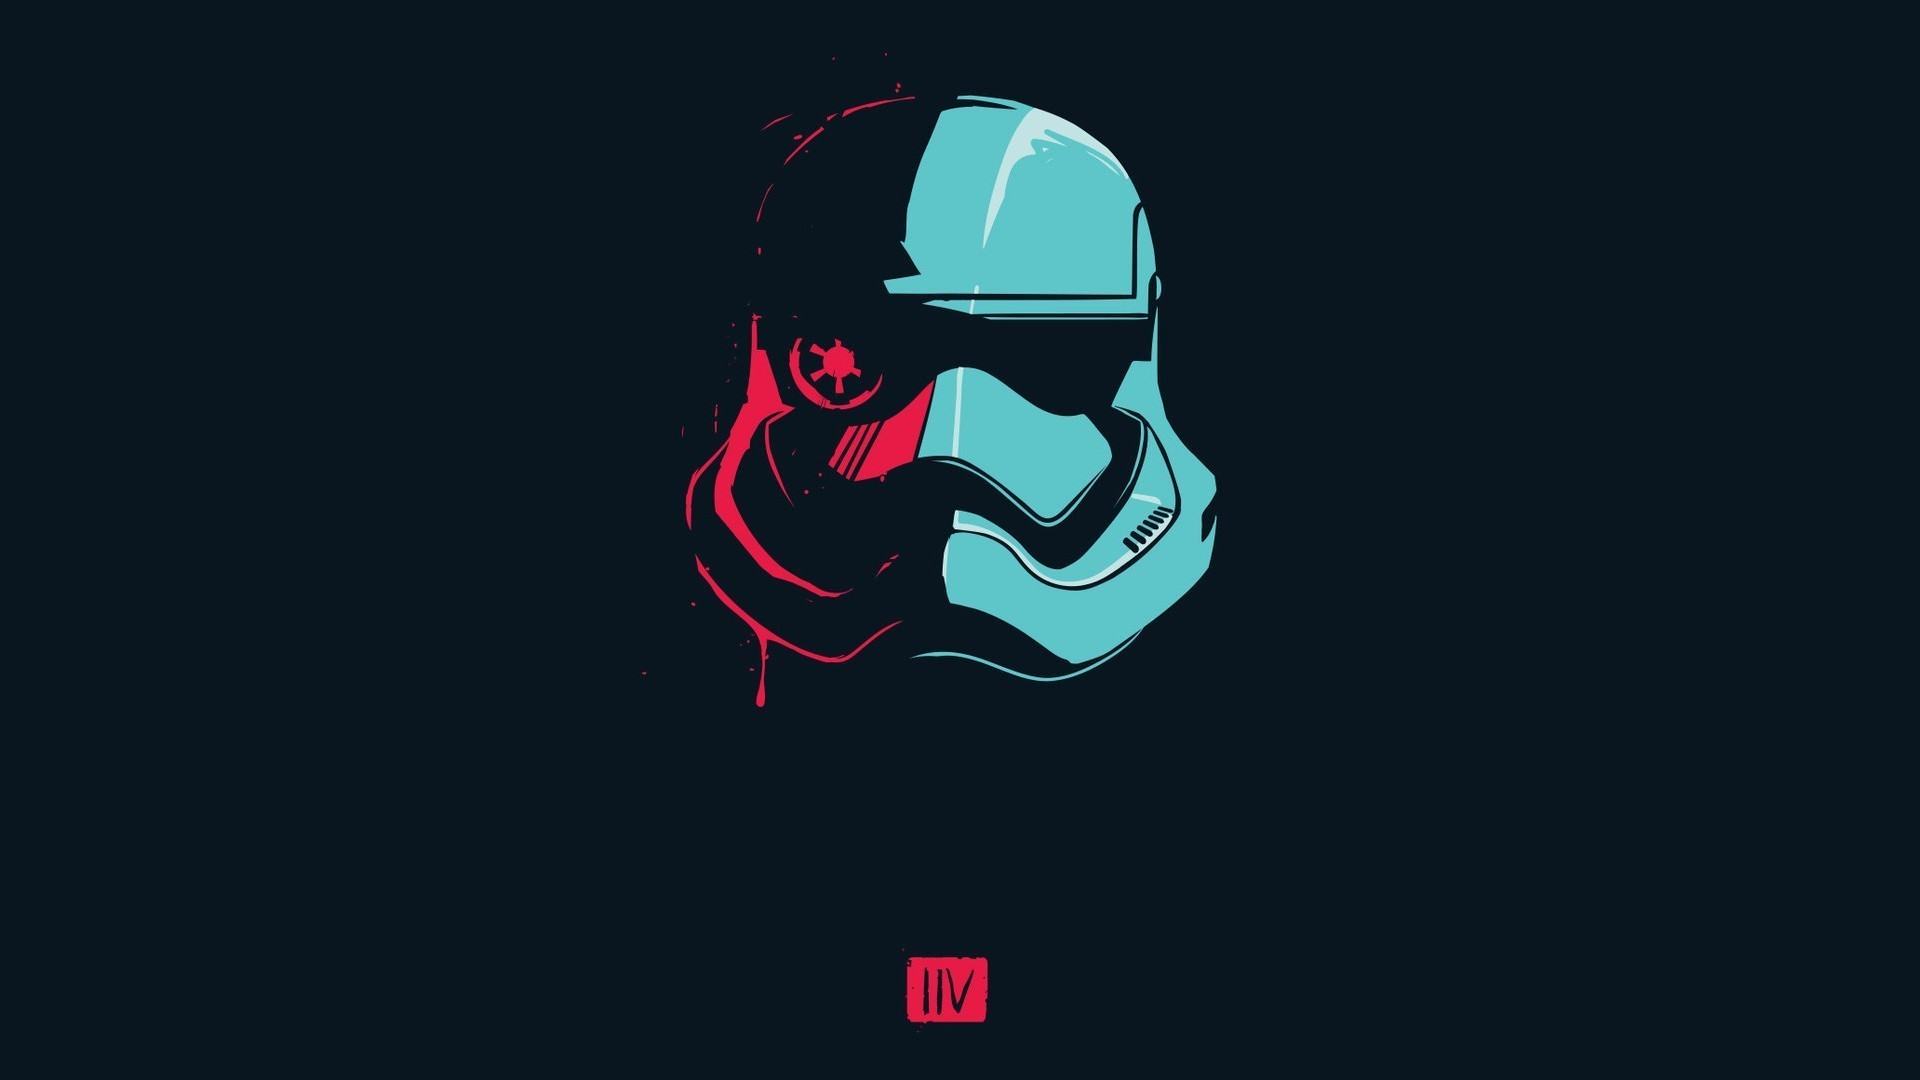 First Order Stormtrooper Wallpaper Download Free Stunning Full